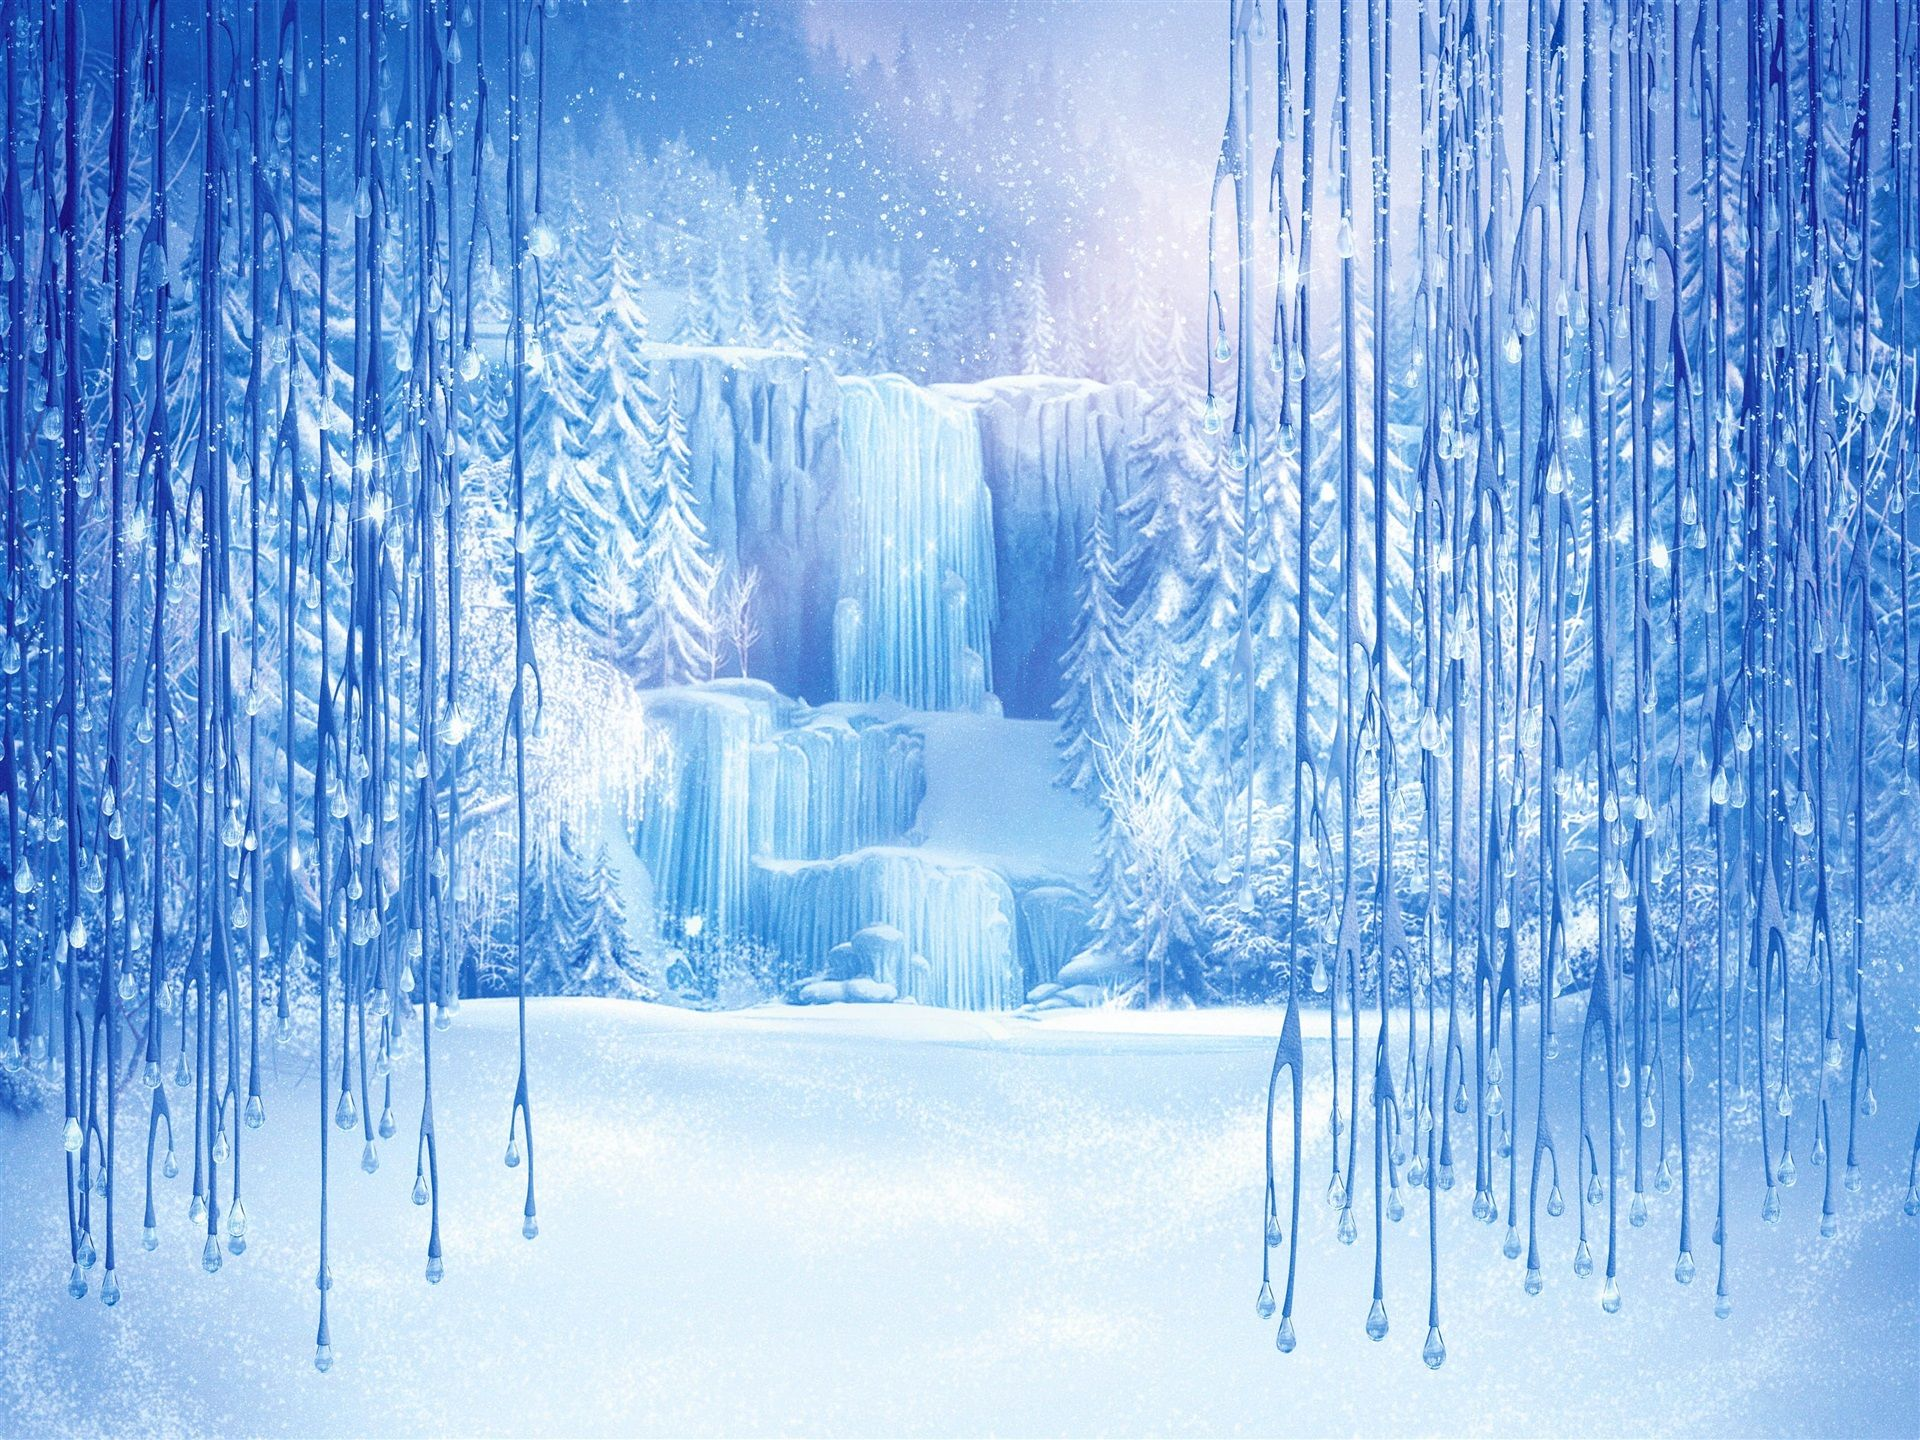 Frozen Elsa Ice Castle Wallpaper | Frozen Party ...